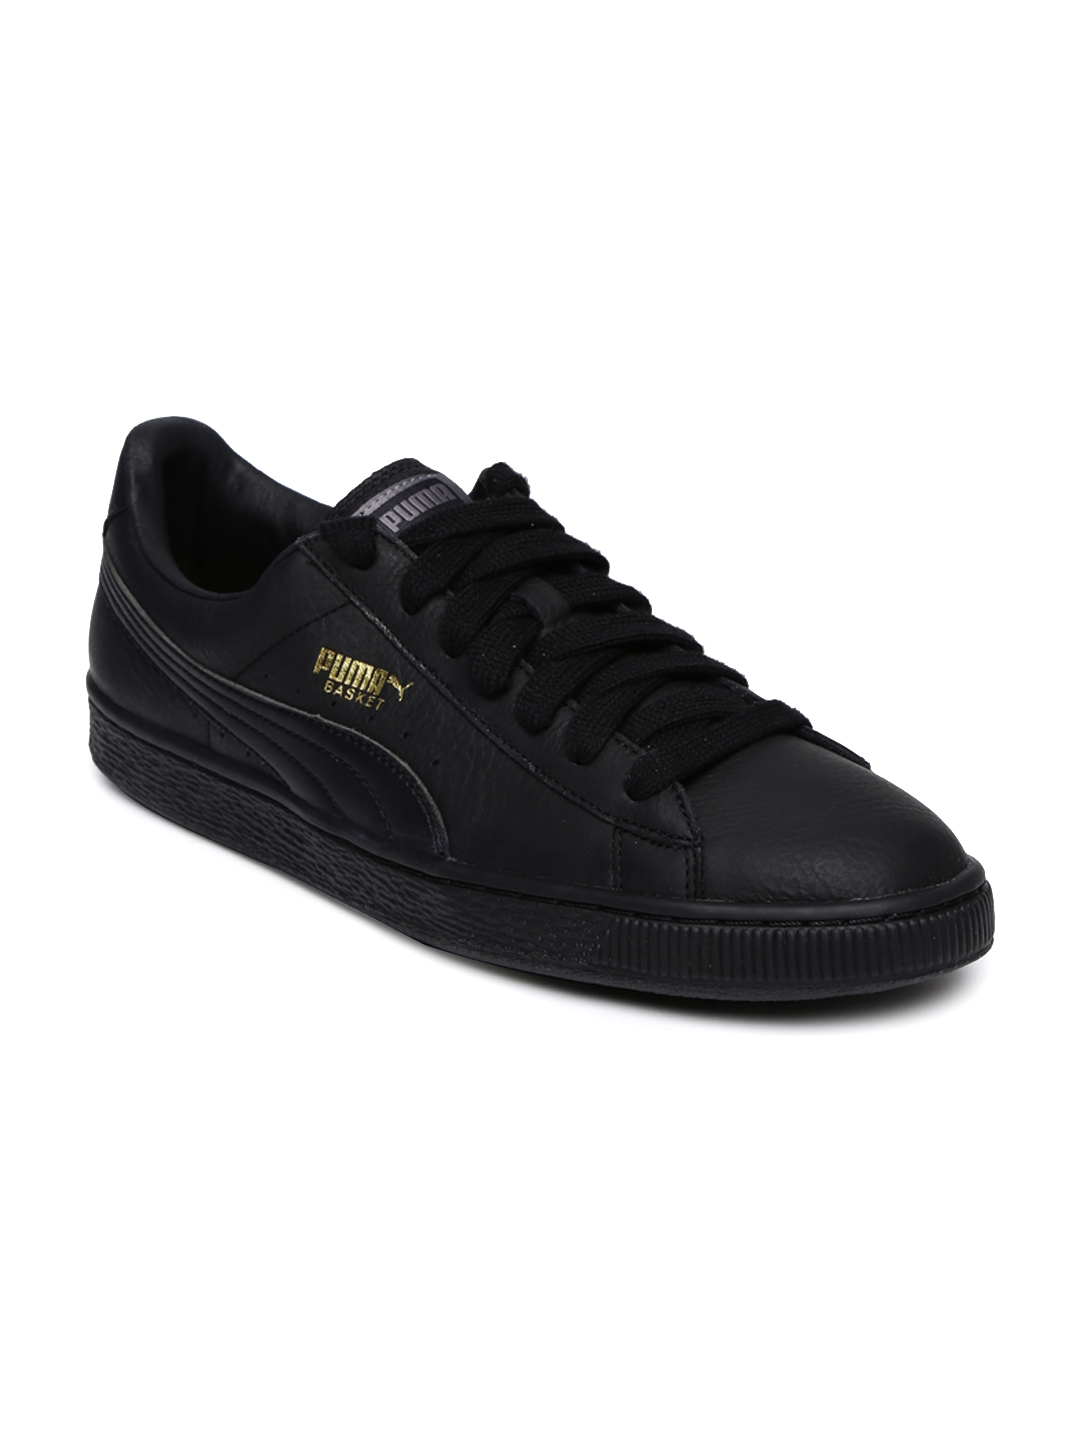 Buy Puma Men Black Solid Basket Classic Leather Sneakers - Casual ... ef76173df